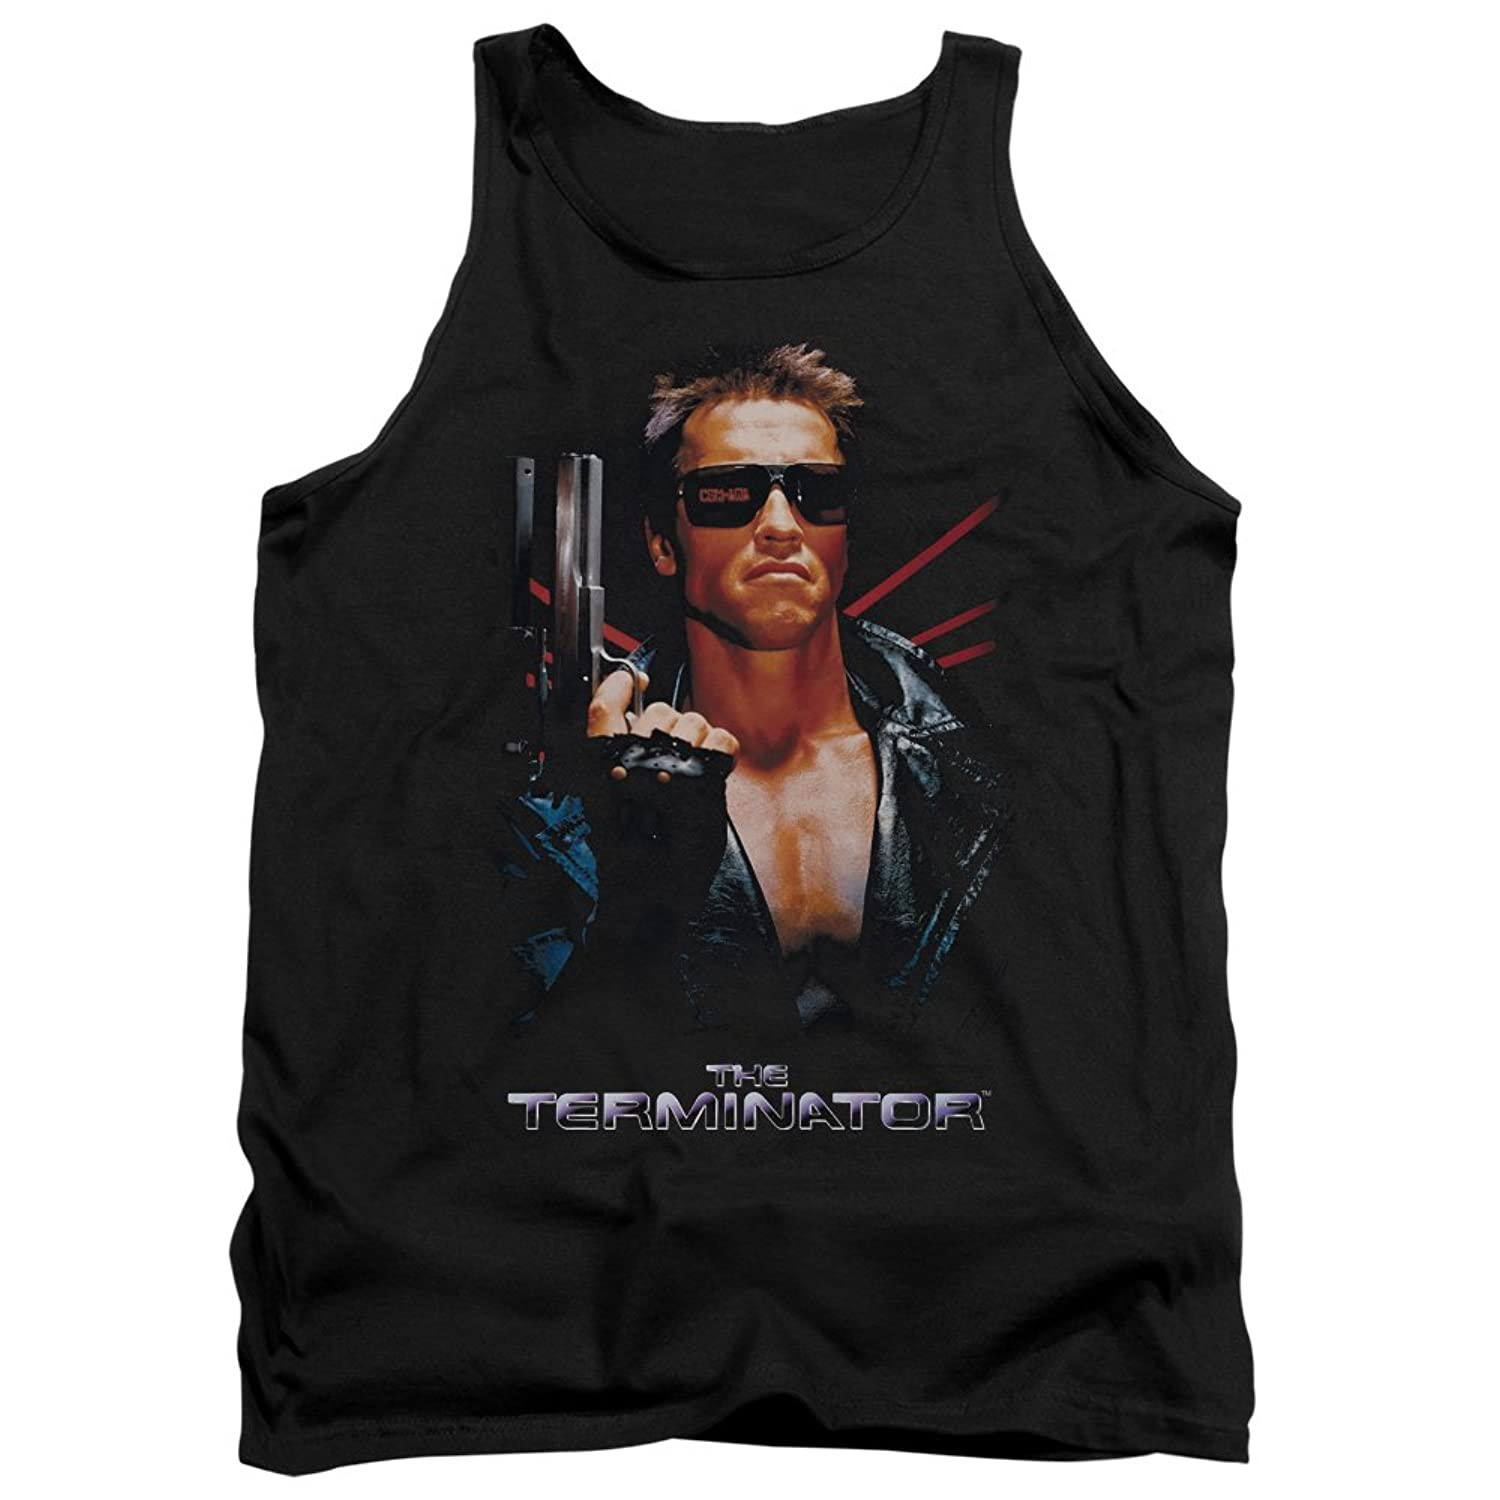 The Terminator 80s Sci-Fi Action Film Arnold Poster Adult Tank Top Shirt